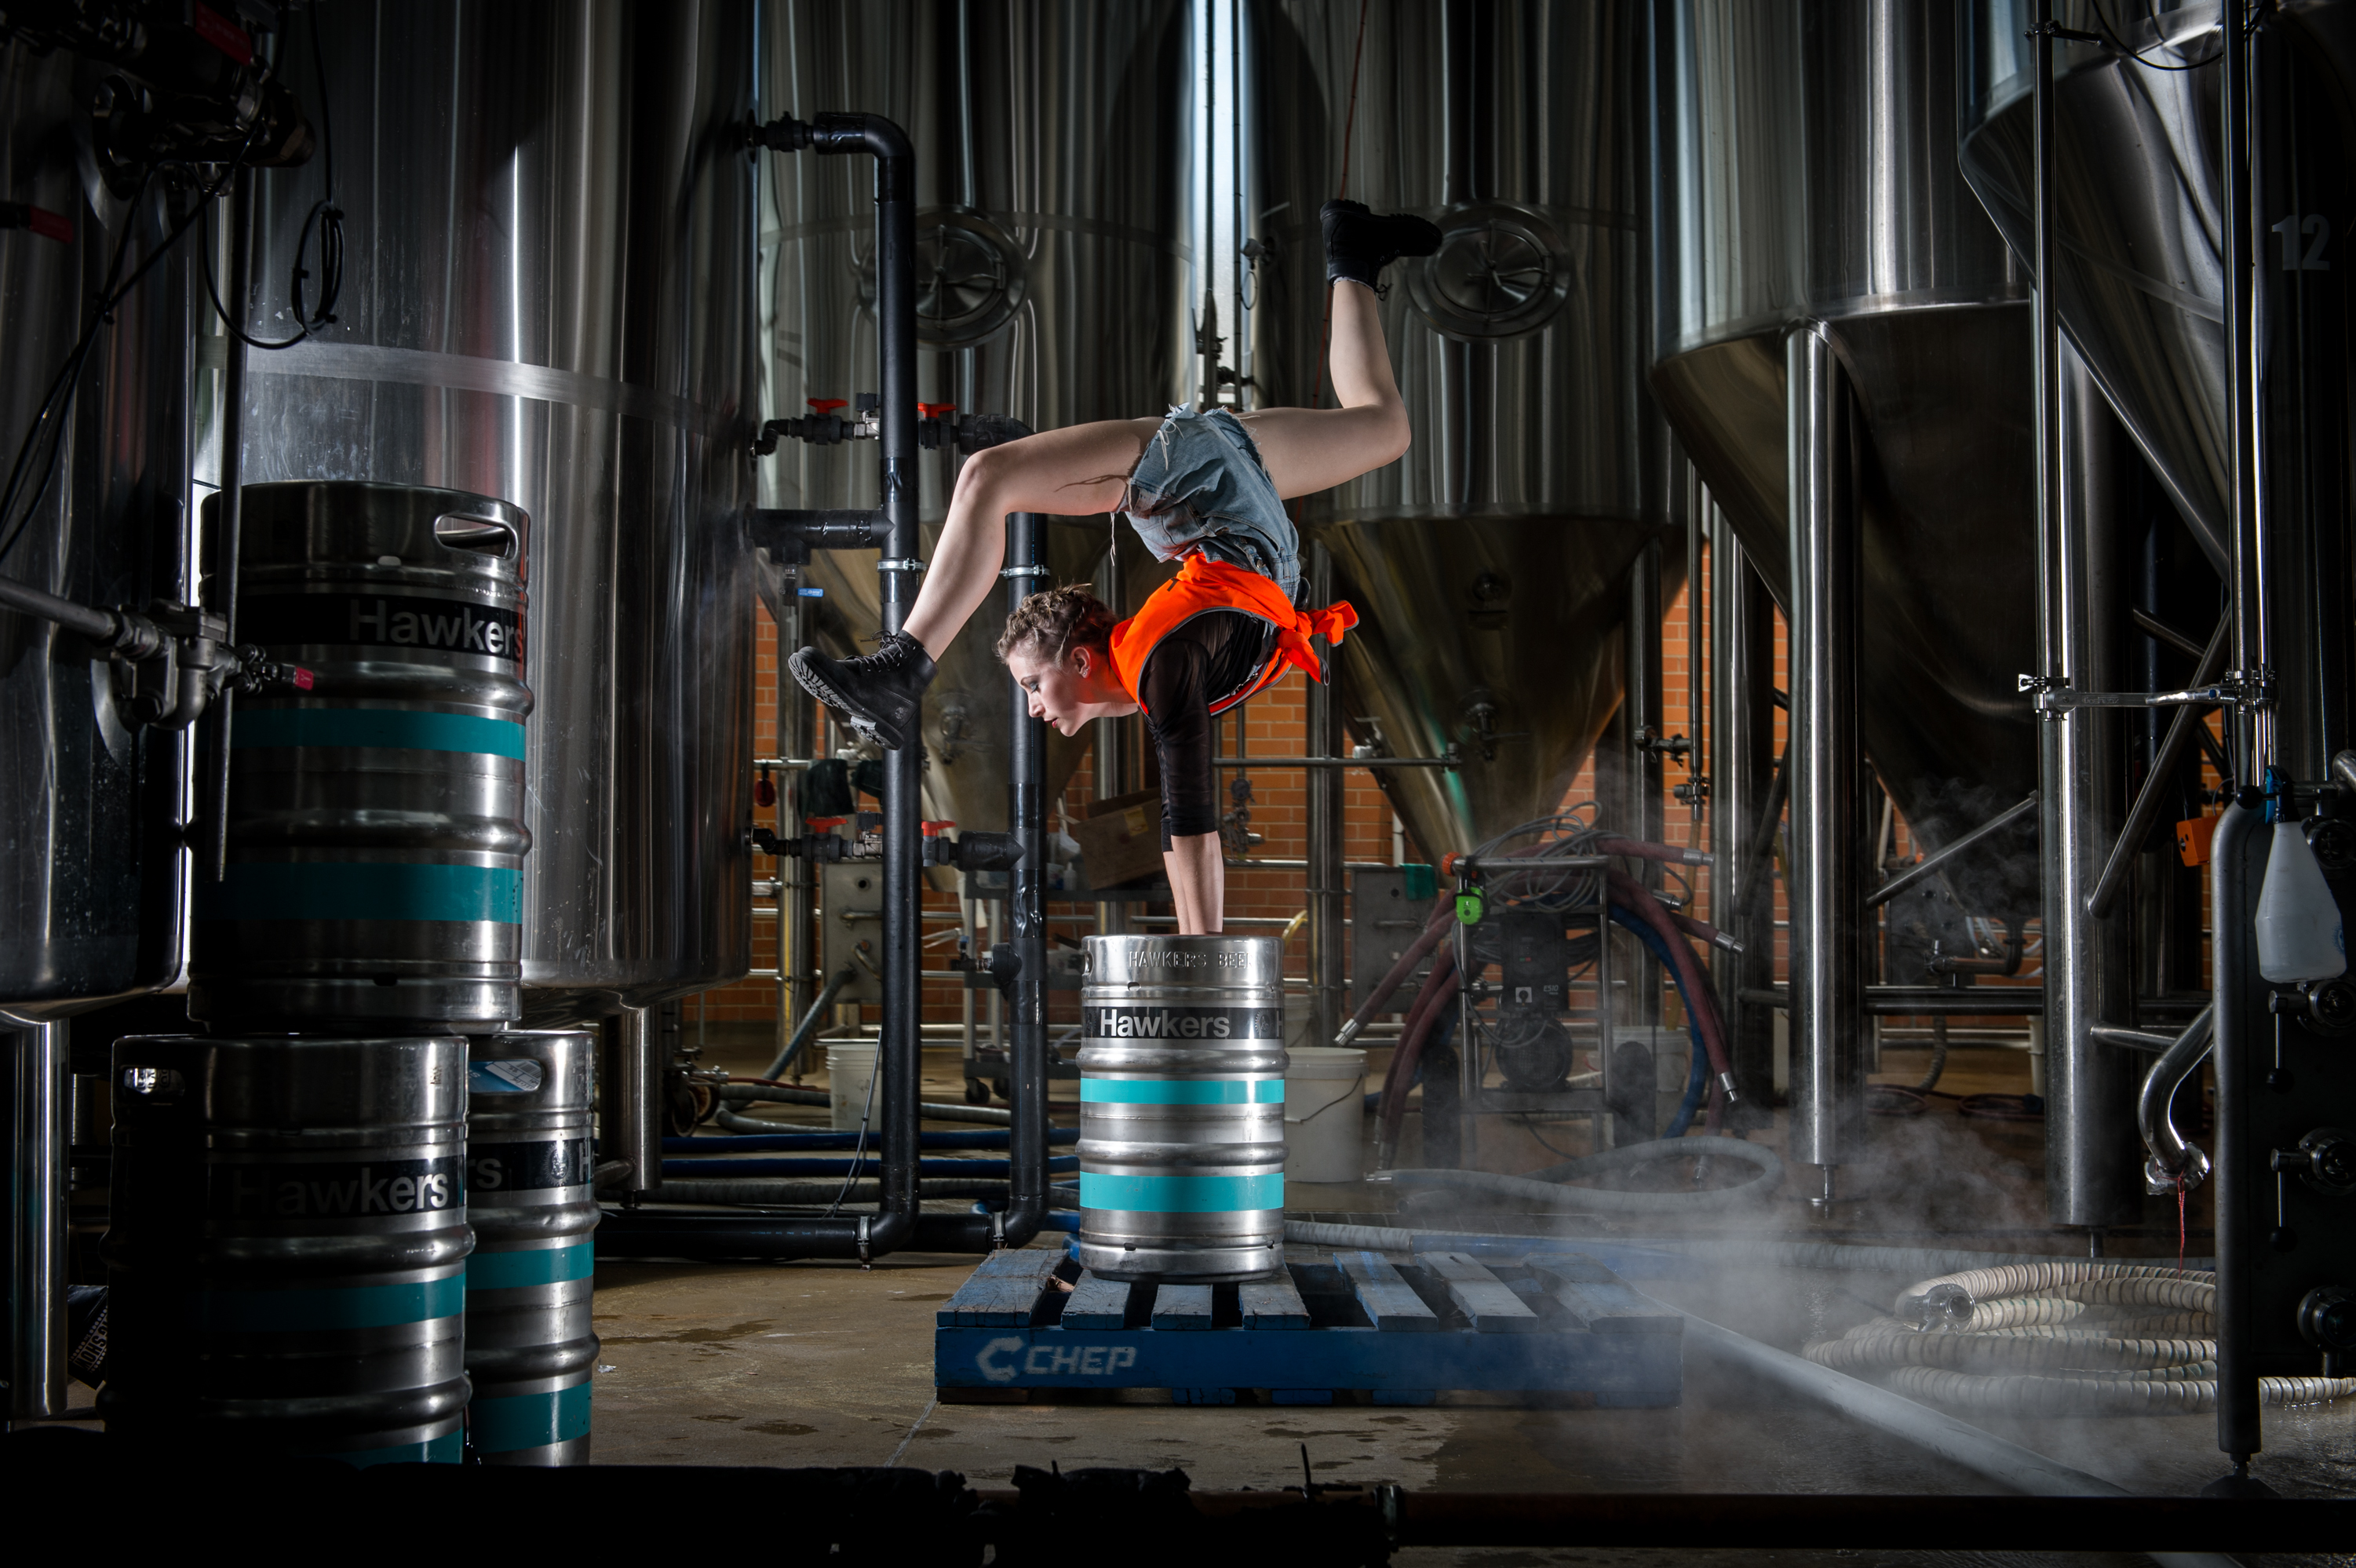 Hawkers Brewery. Acrobat Emily Gare in action at Hawkers Brewery in Reservoir ahead of Good Beer Week.